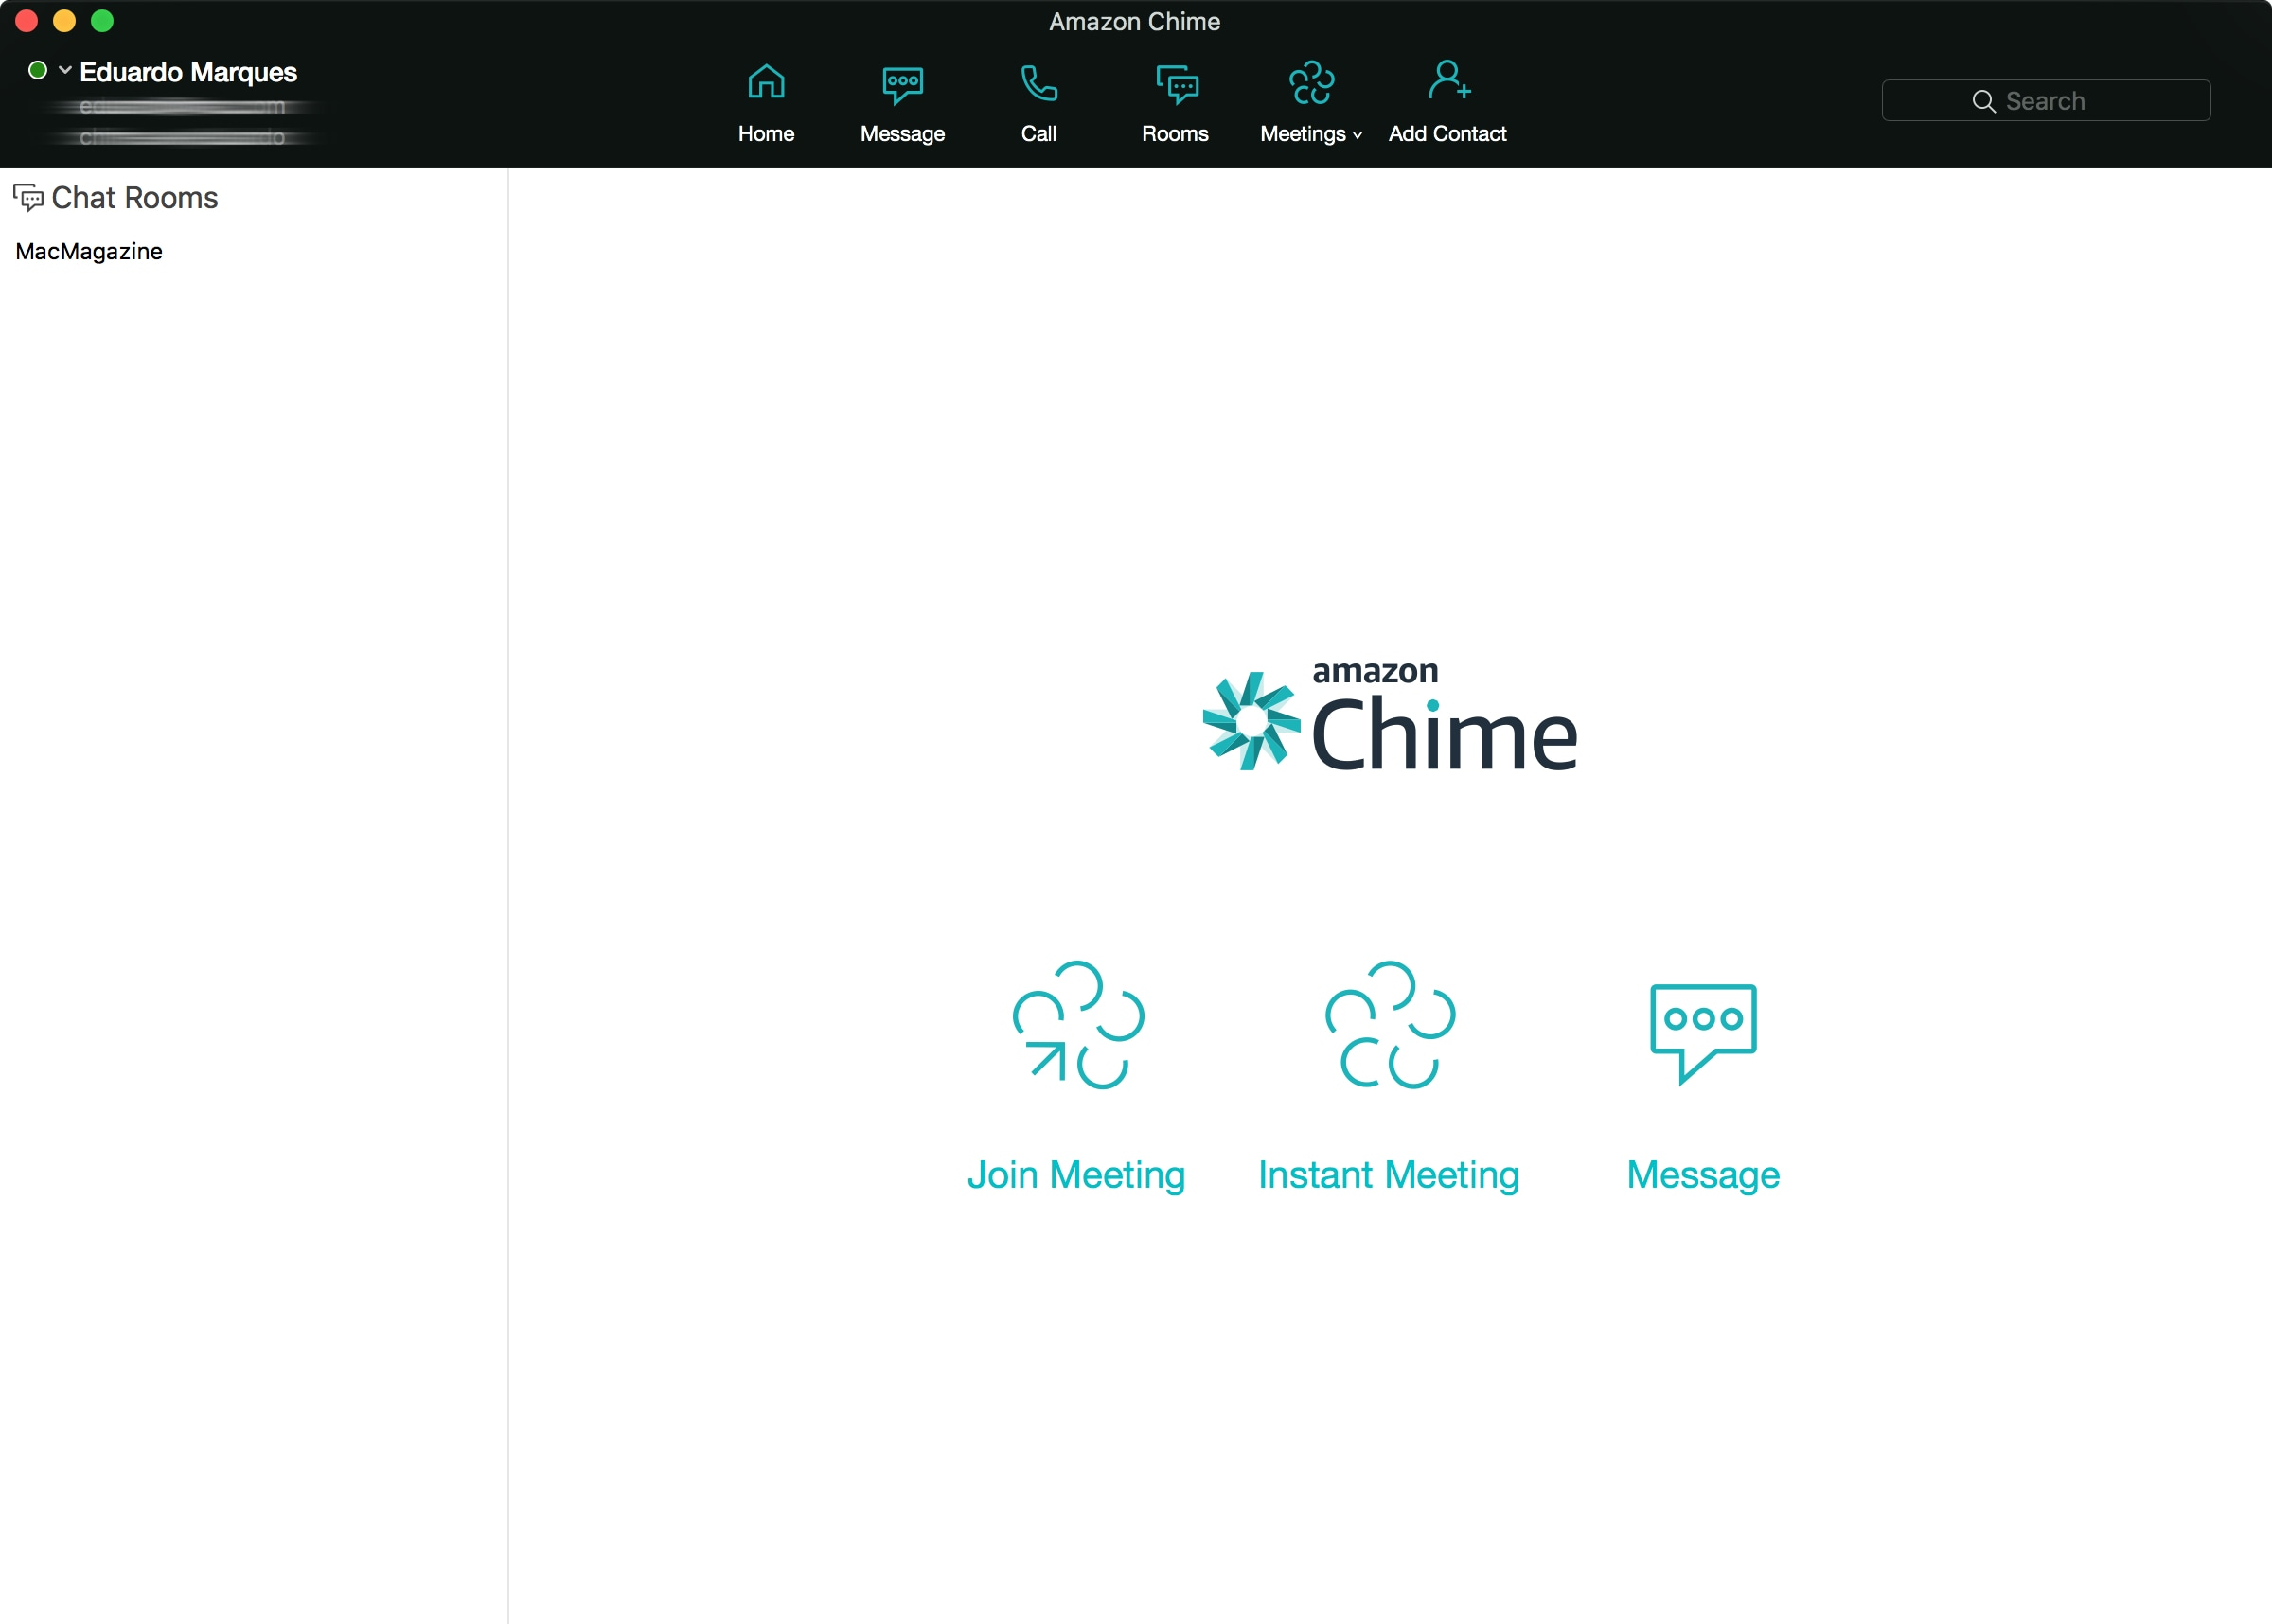 Interface do Amazon Chime para macOS